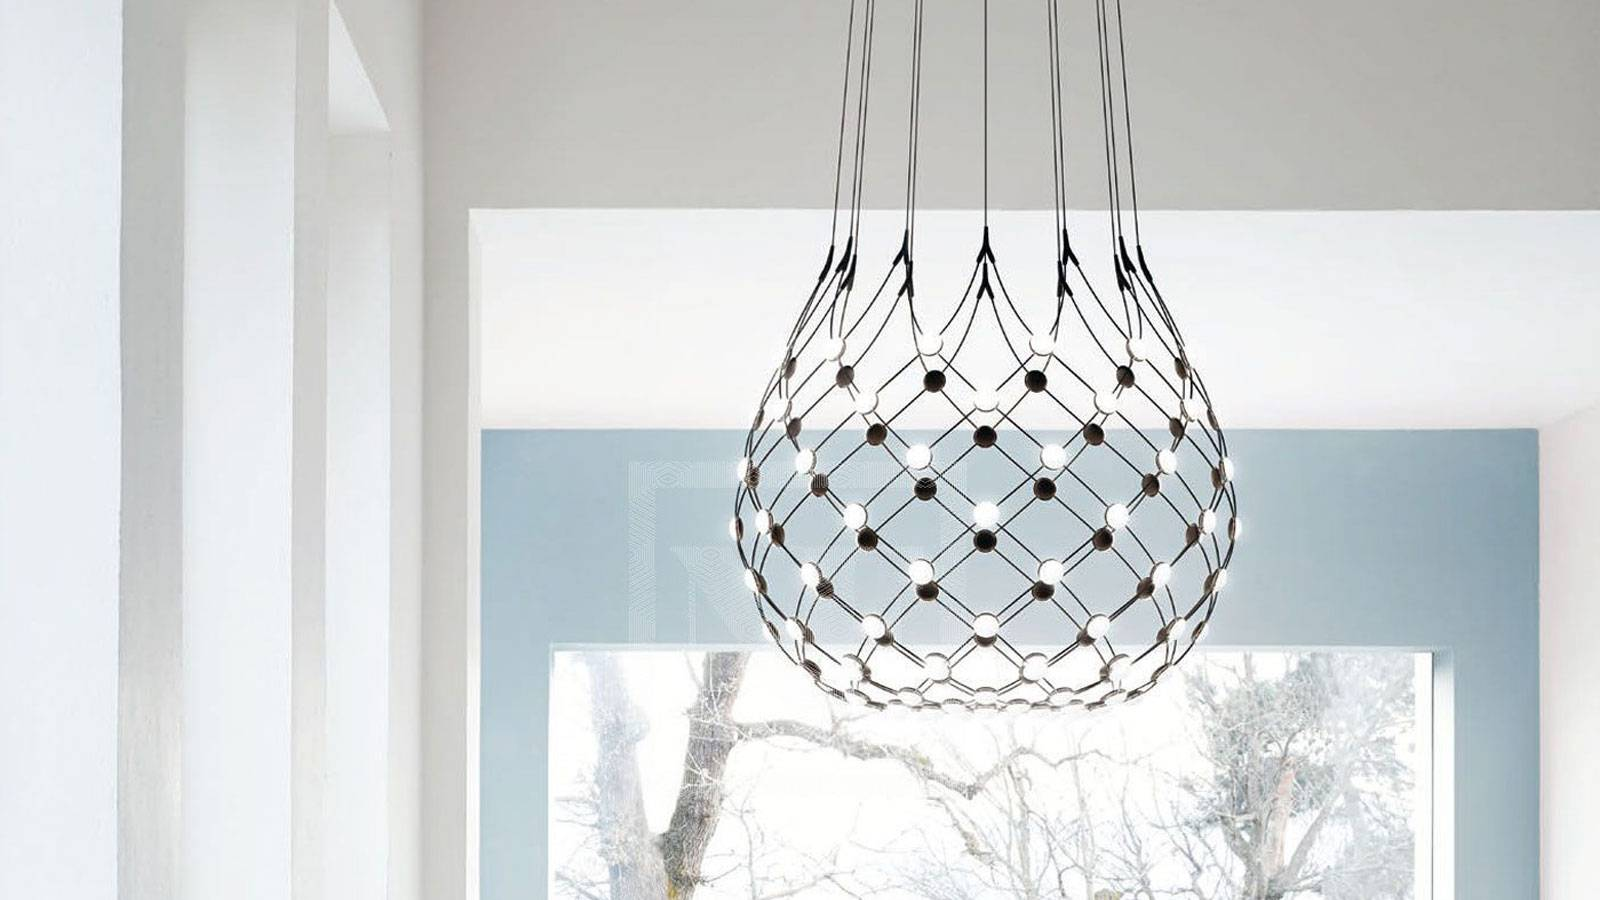 suspension design lamp by Francisco Gomez Paz for Luceplan